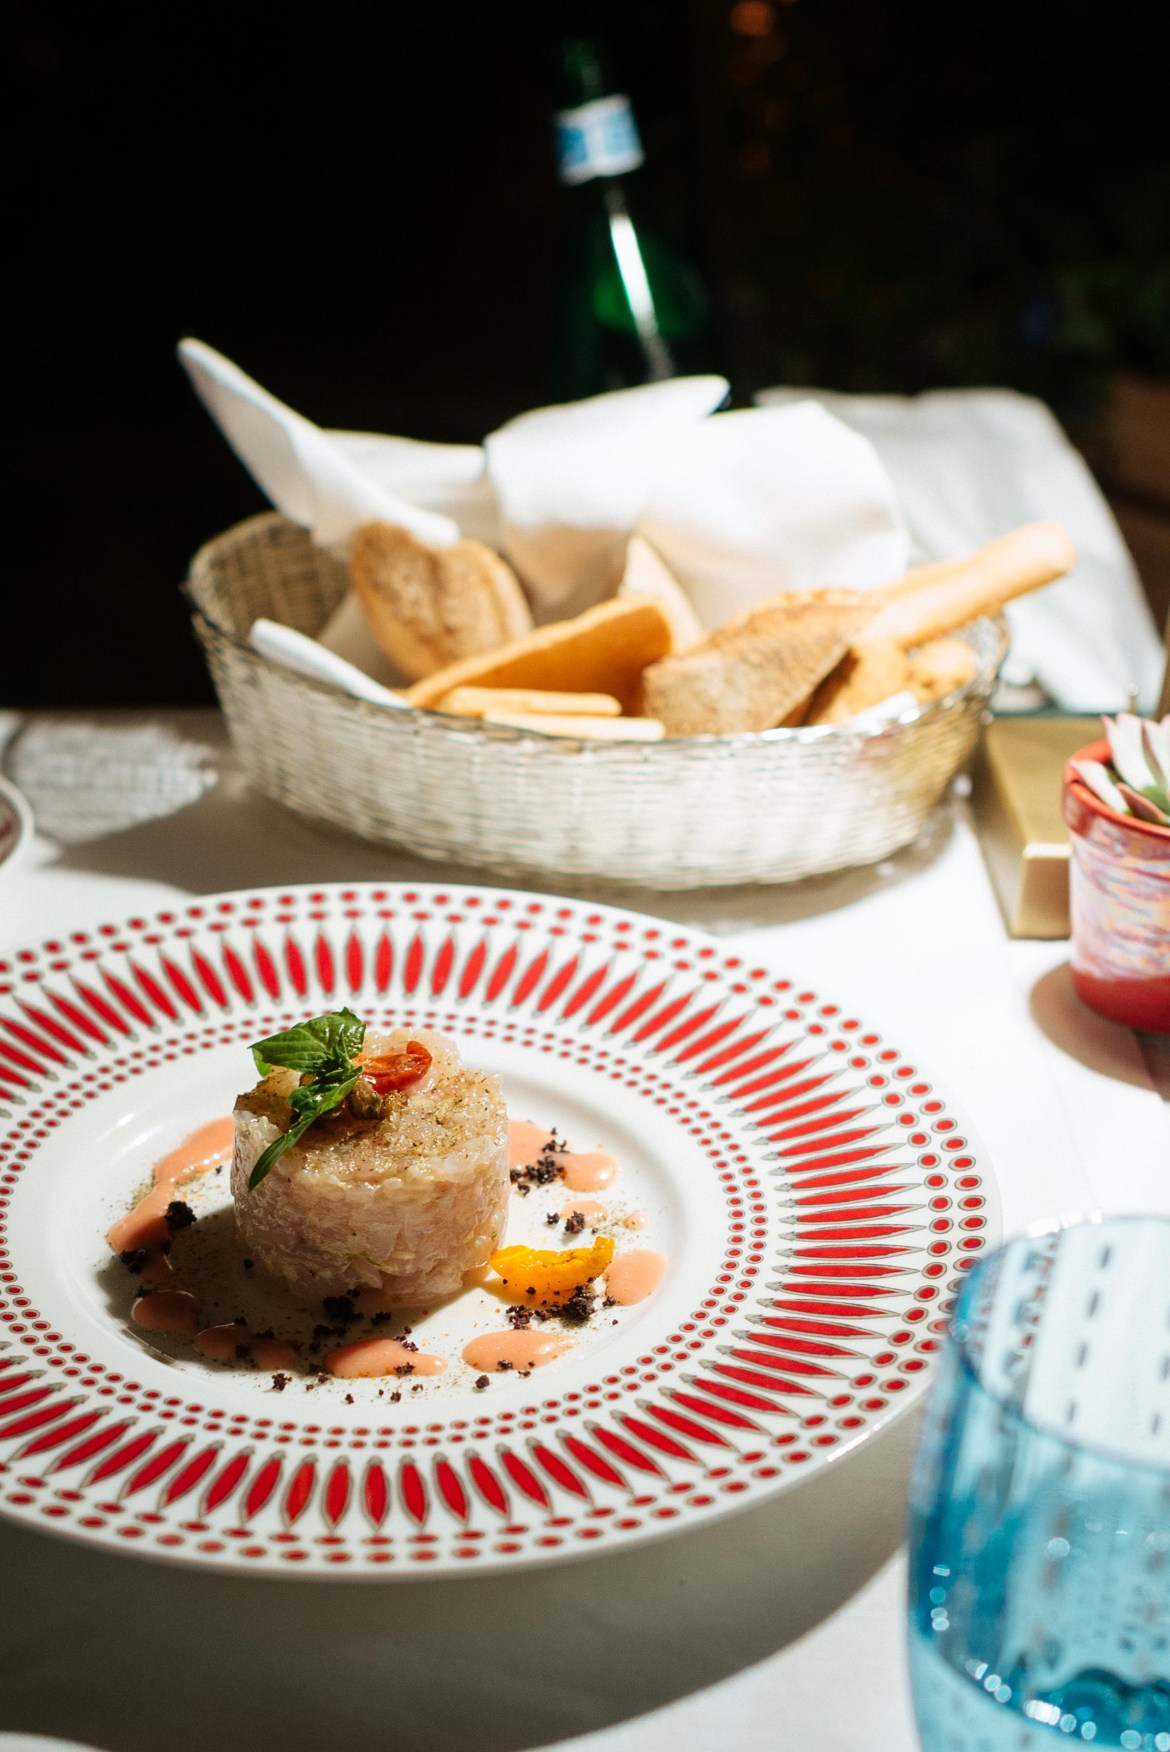 The Mezzatorre Hotel in Ischia's La Torre restaurant serving red snapper crudo on a custom Villeroy & Boch chilipeper dish and zafferano glasses. Photo by The Taste Edit, Sarah Stanfield